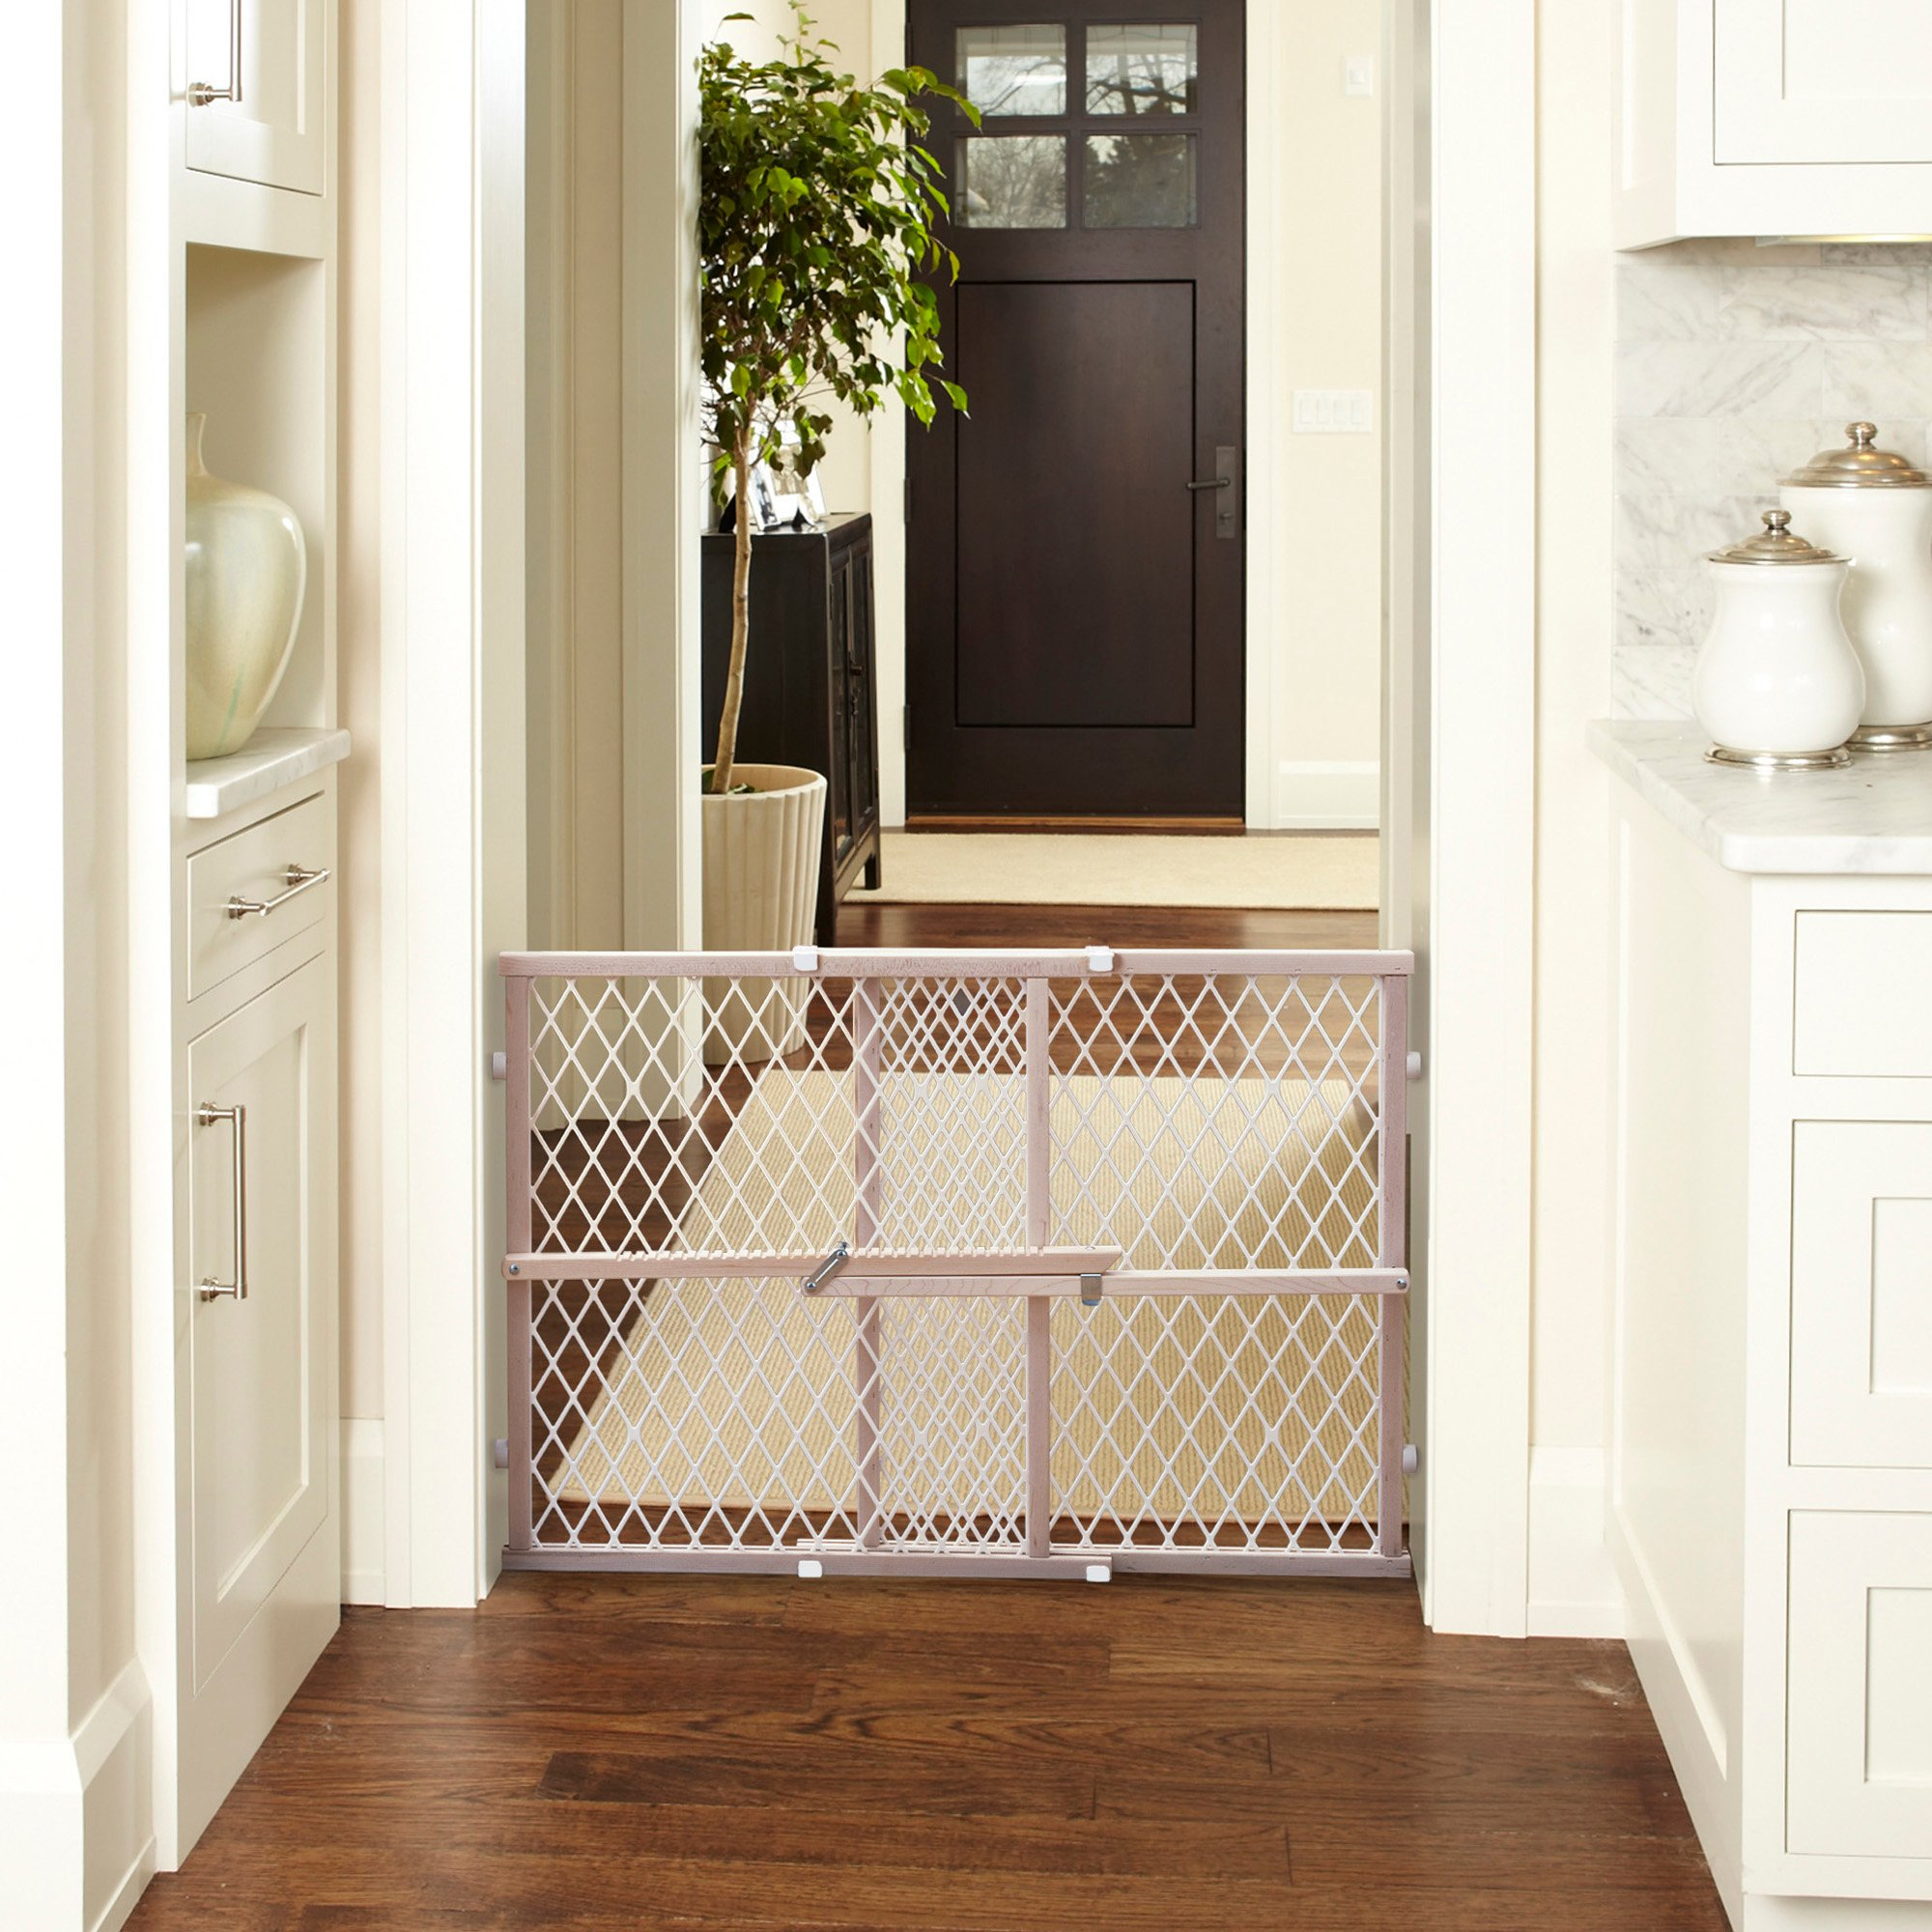 North States Wood Frame Diamond Mesh Pet Gate | Petco